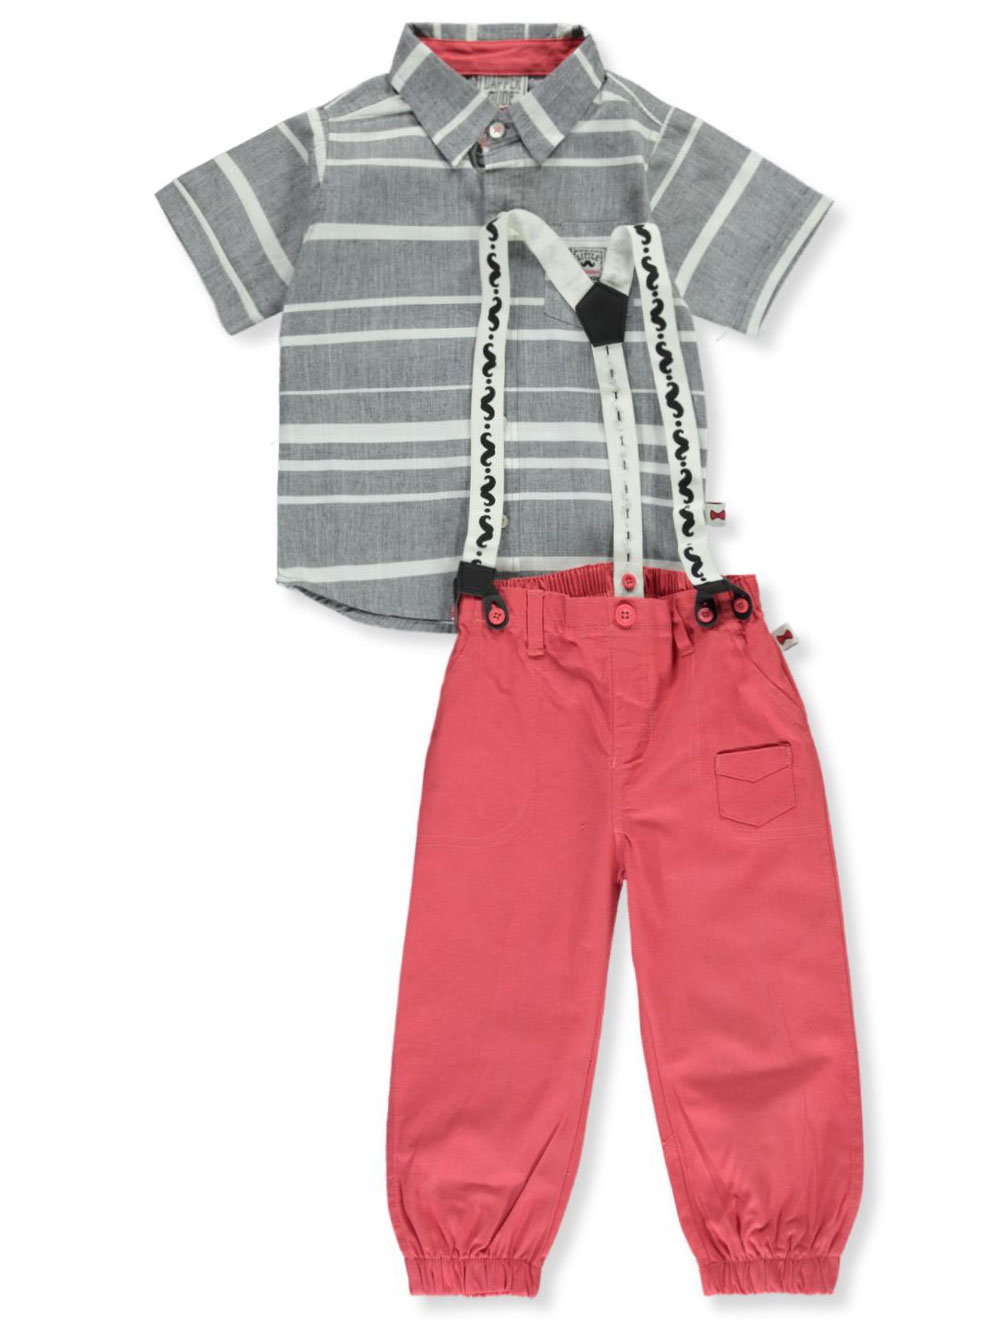 Boys Navy Pant Sets